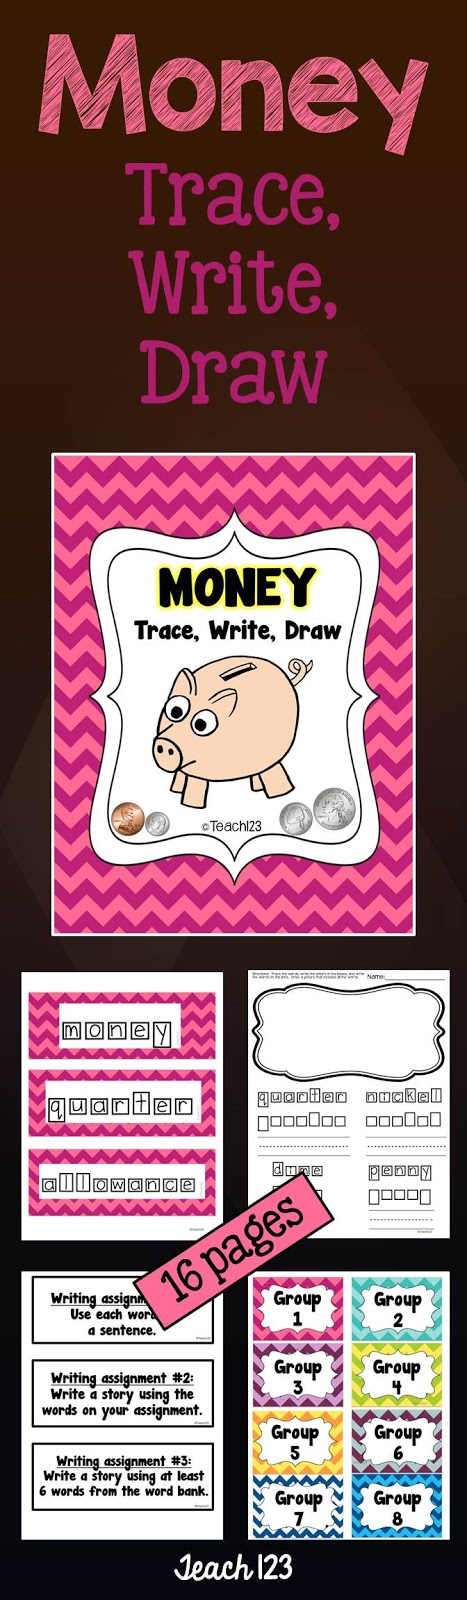 Teach 123 Money Trace Write Draw Printables at TeachersPayTeachers